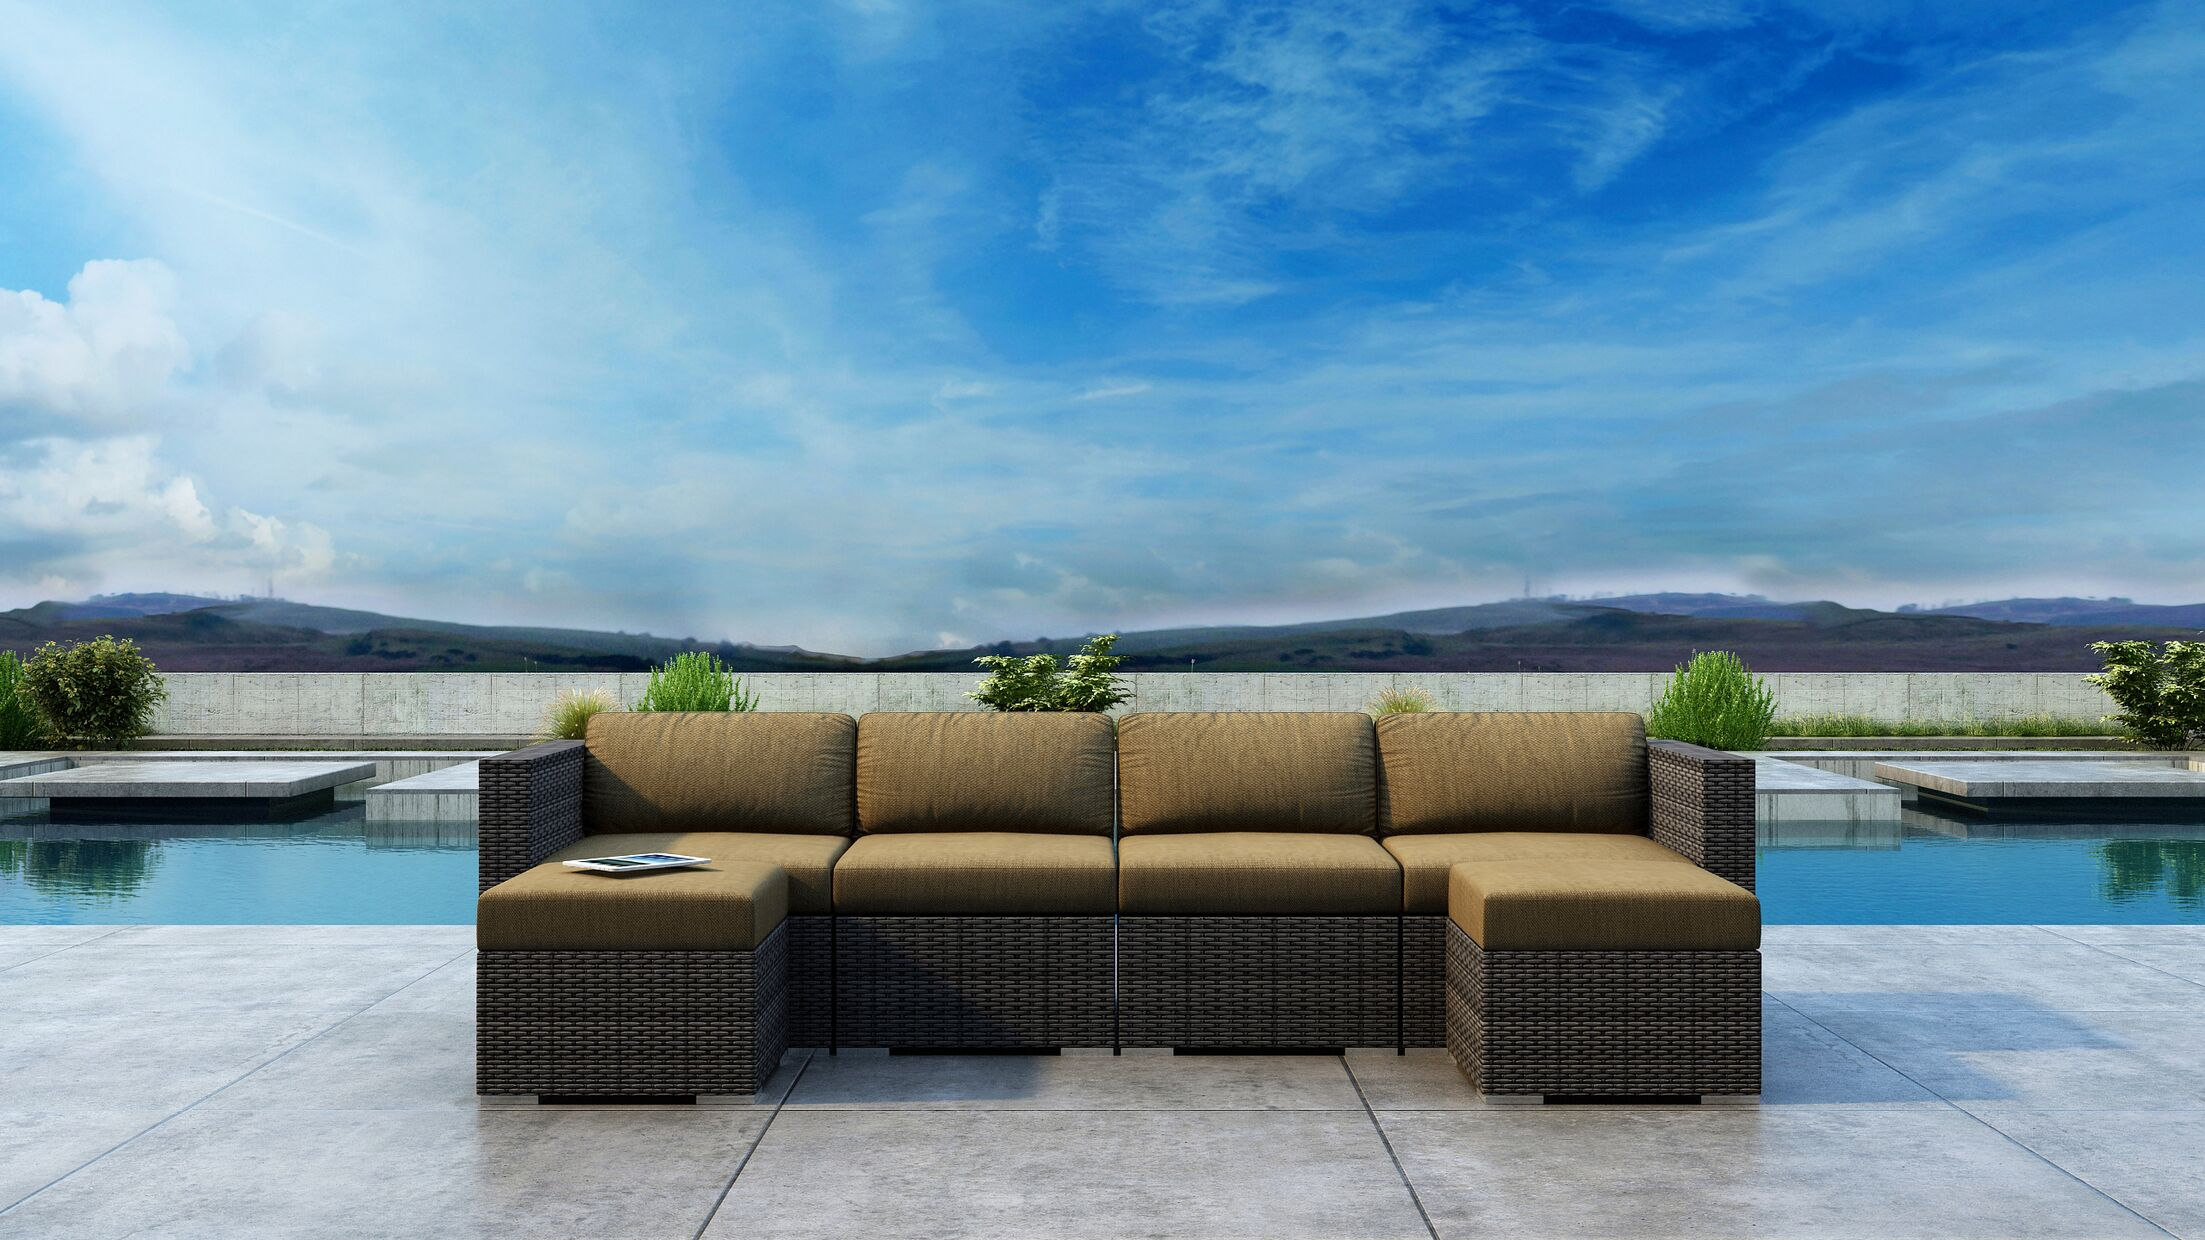 Gilleland 6 Piece Sectional Set with Sunbrella Cushion Cushion Color: Heather Beige